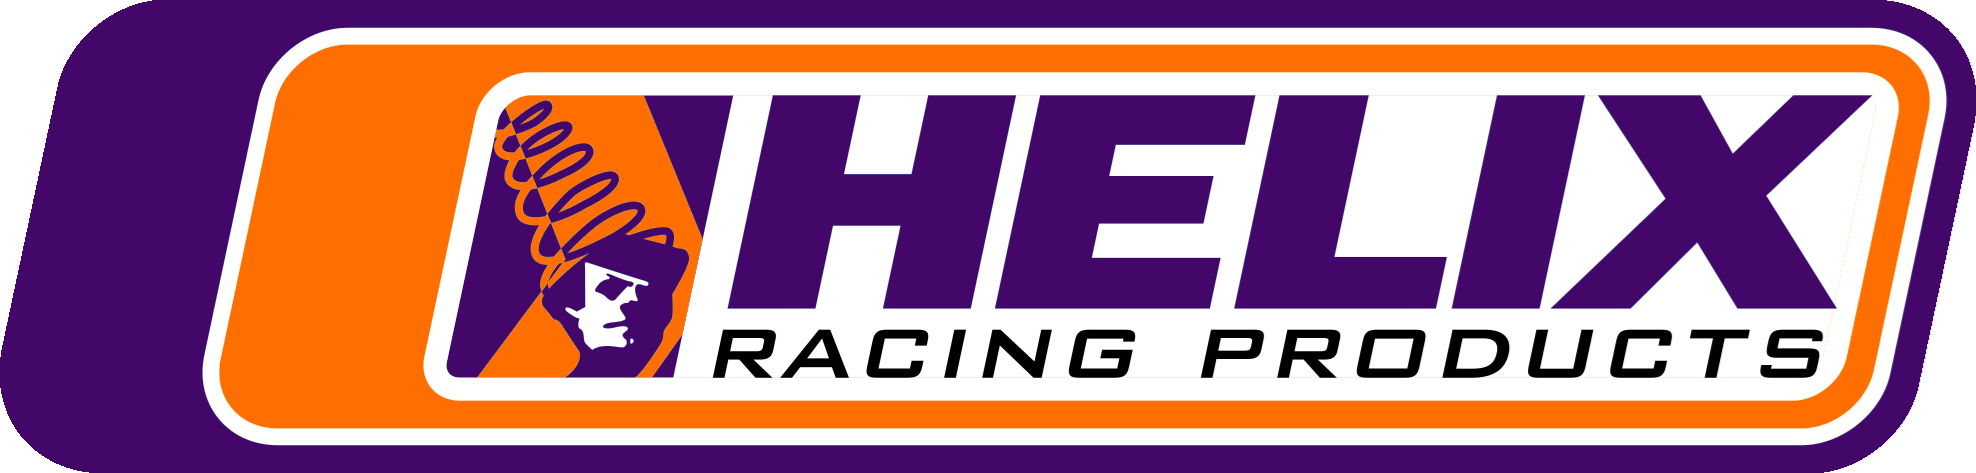 Helix Racing Products  |  Your Source for Premium Powersport Supplies